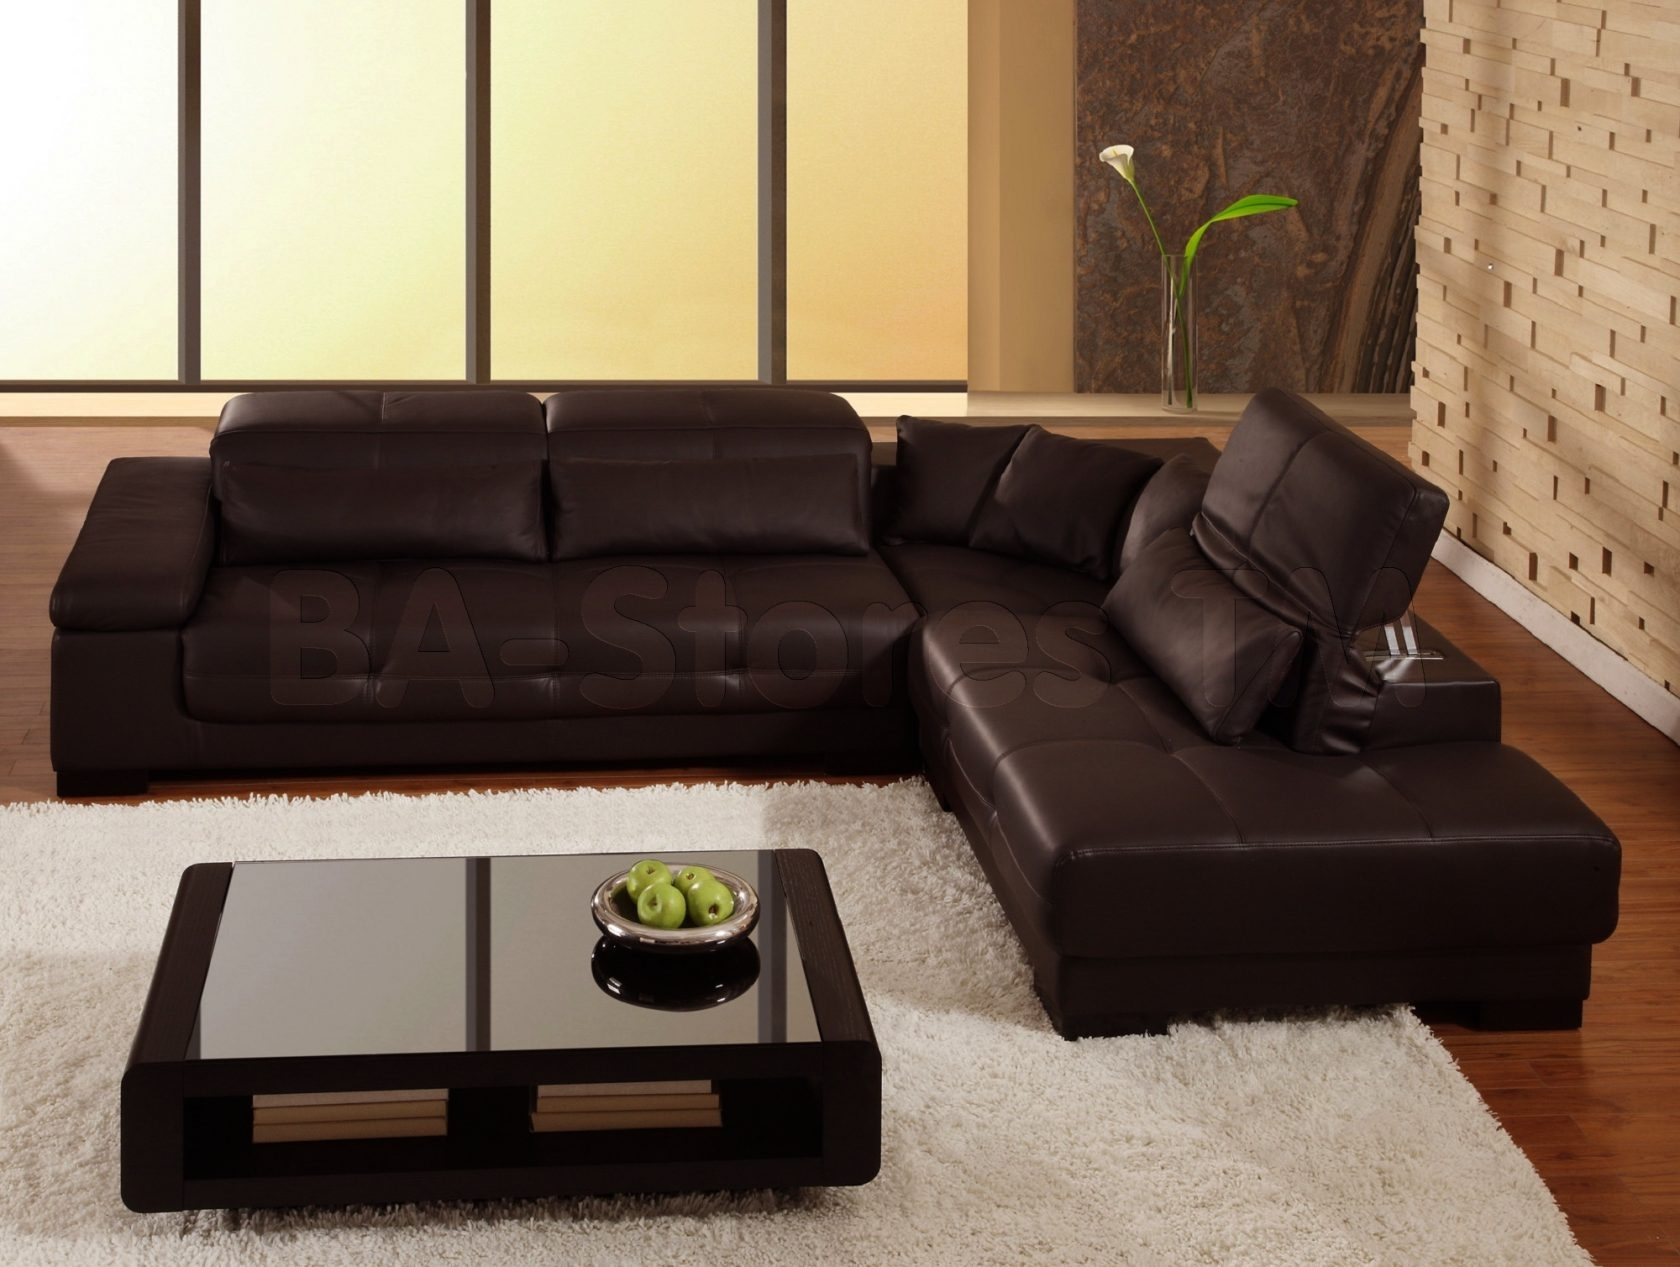 Glamorous Brown Leather Sectional Sofa Clearance 15 For Sectional regarding Clearance Sectional Sofas (Image 11 of 15)